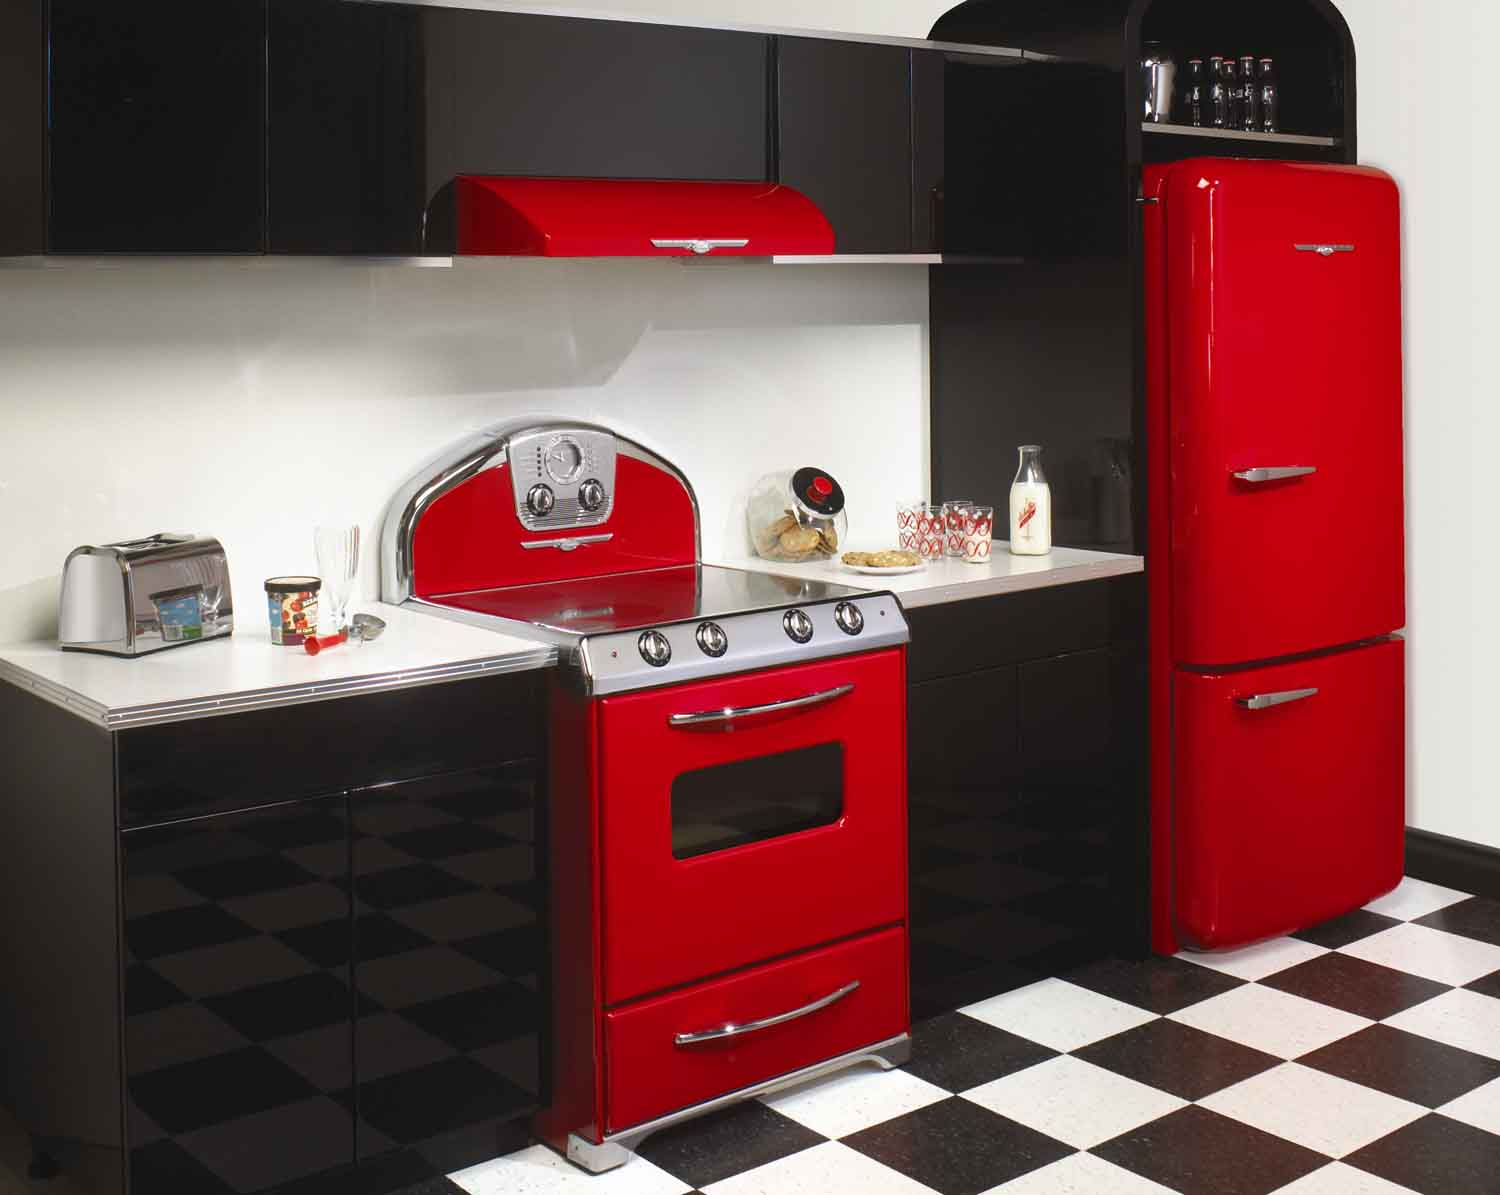 Appliance Kitchen The Daily Tubber 1950s Kitchen